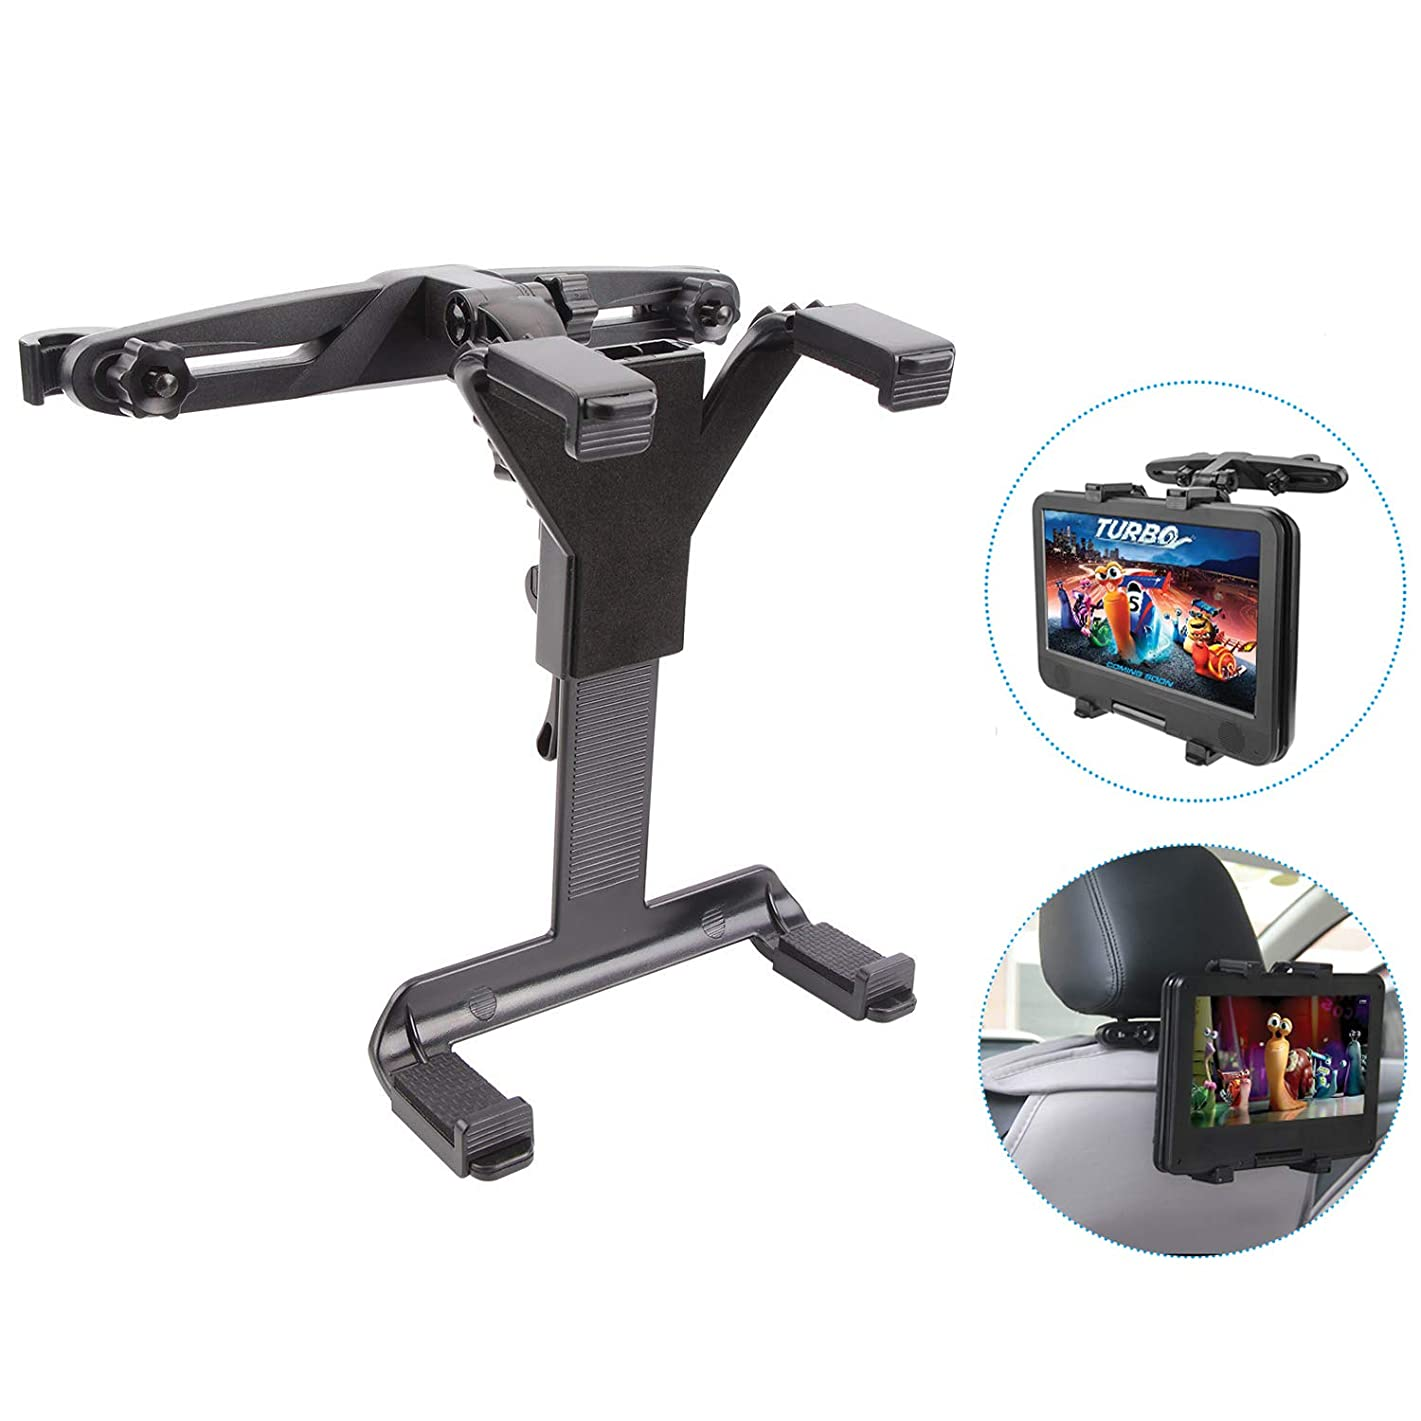 MAYOGA Car Headrest Mount Universal Tablet Holder Stand Car Headrest Tablet Mount Cradle Backseat Bracket Compatible with iPad Air/Mini/Samsung Galaxy Tab/Portable DVD Player/Kindle Fire/7-12 Inches T